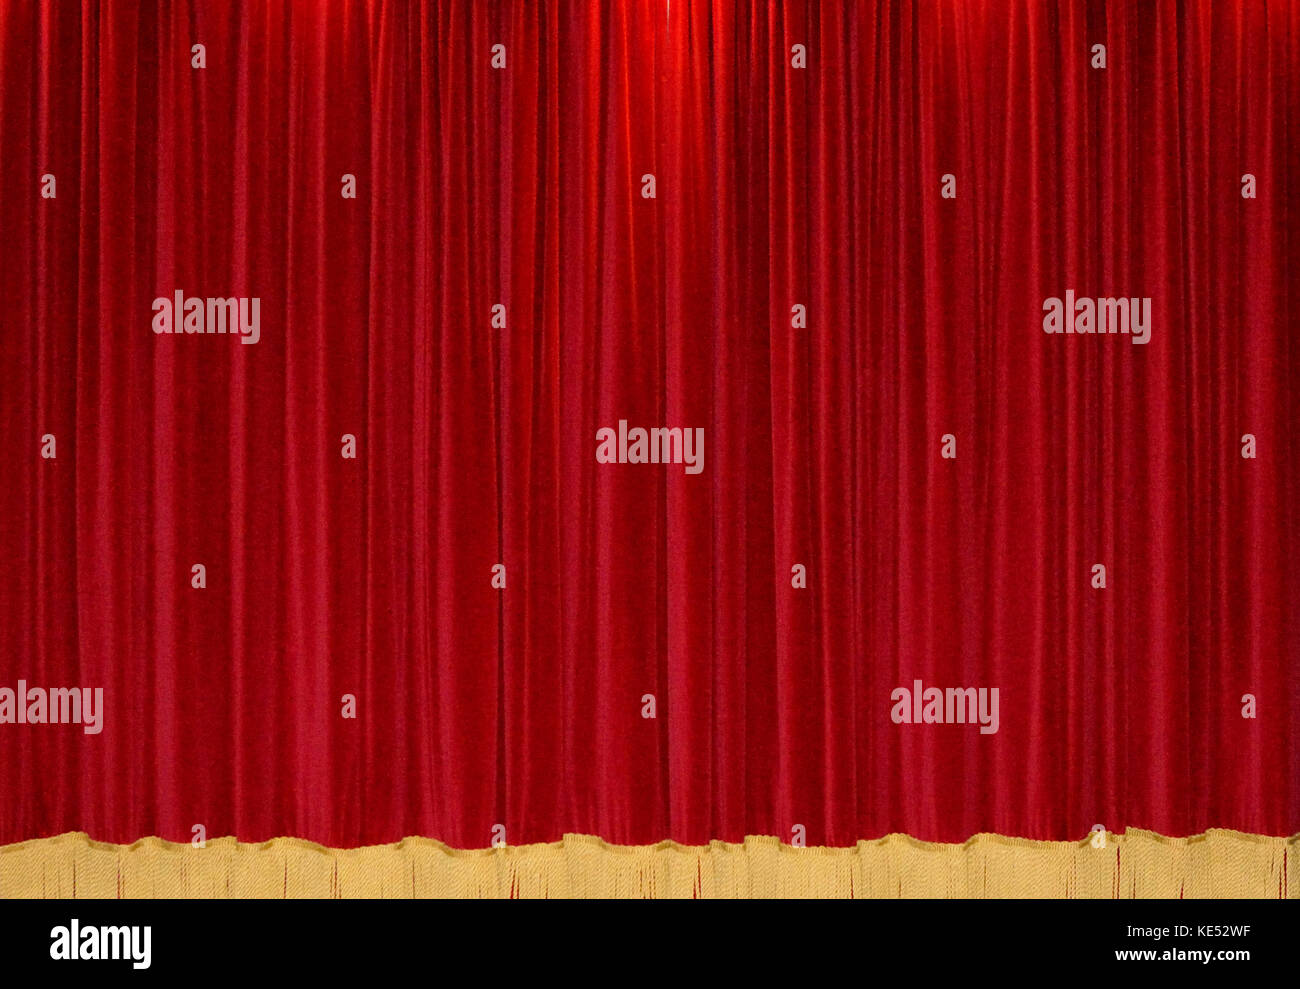 Closed theater curtains - Velvet Red Curtains Closed Curtains With A Gold Trimming At The Bottom Stock Image